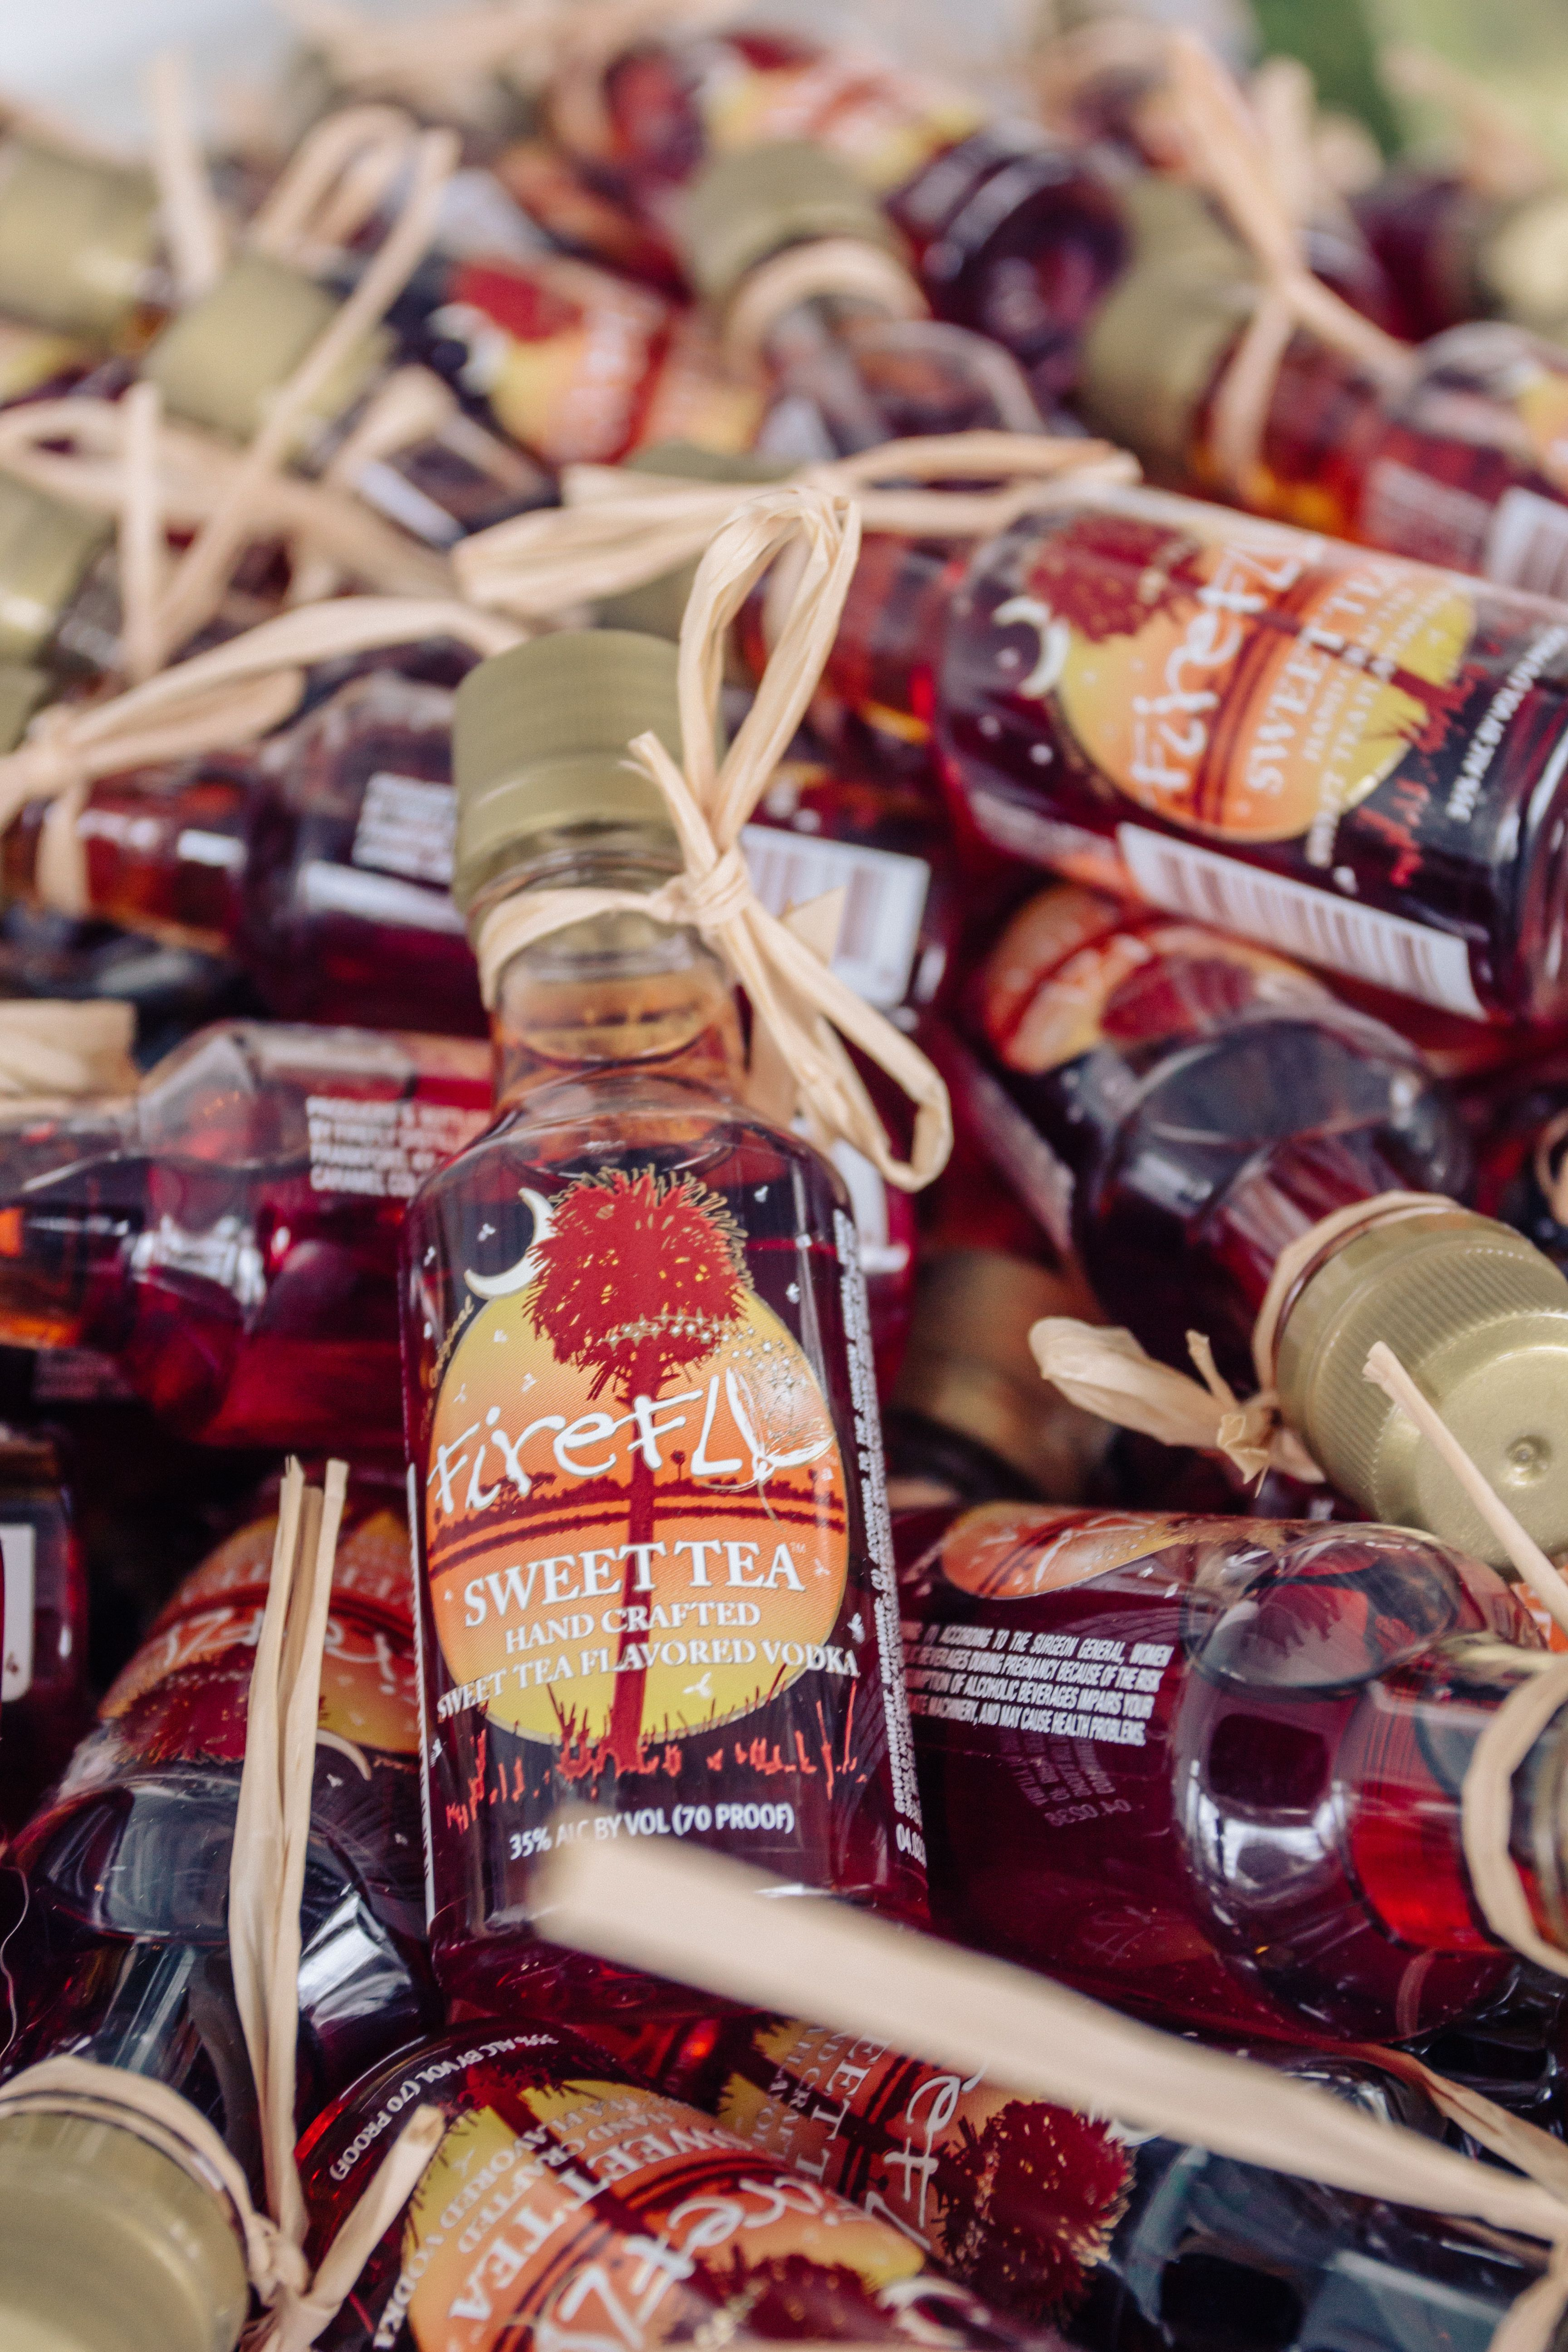 Firefly mini bottles are an awesome favor for a Lowcountry wedding ...